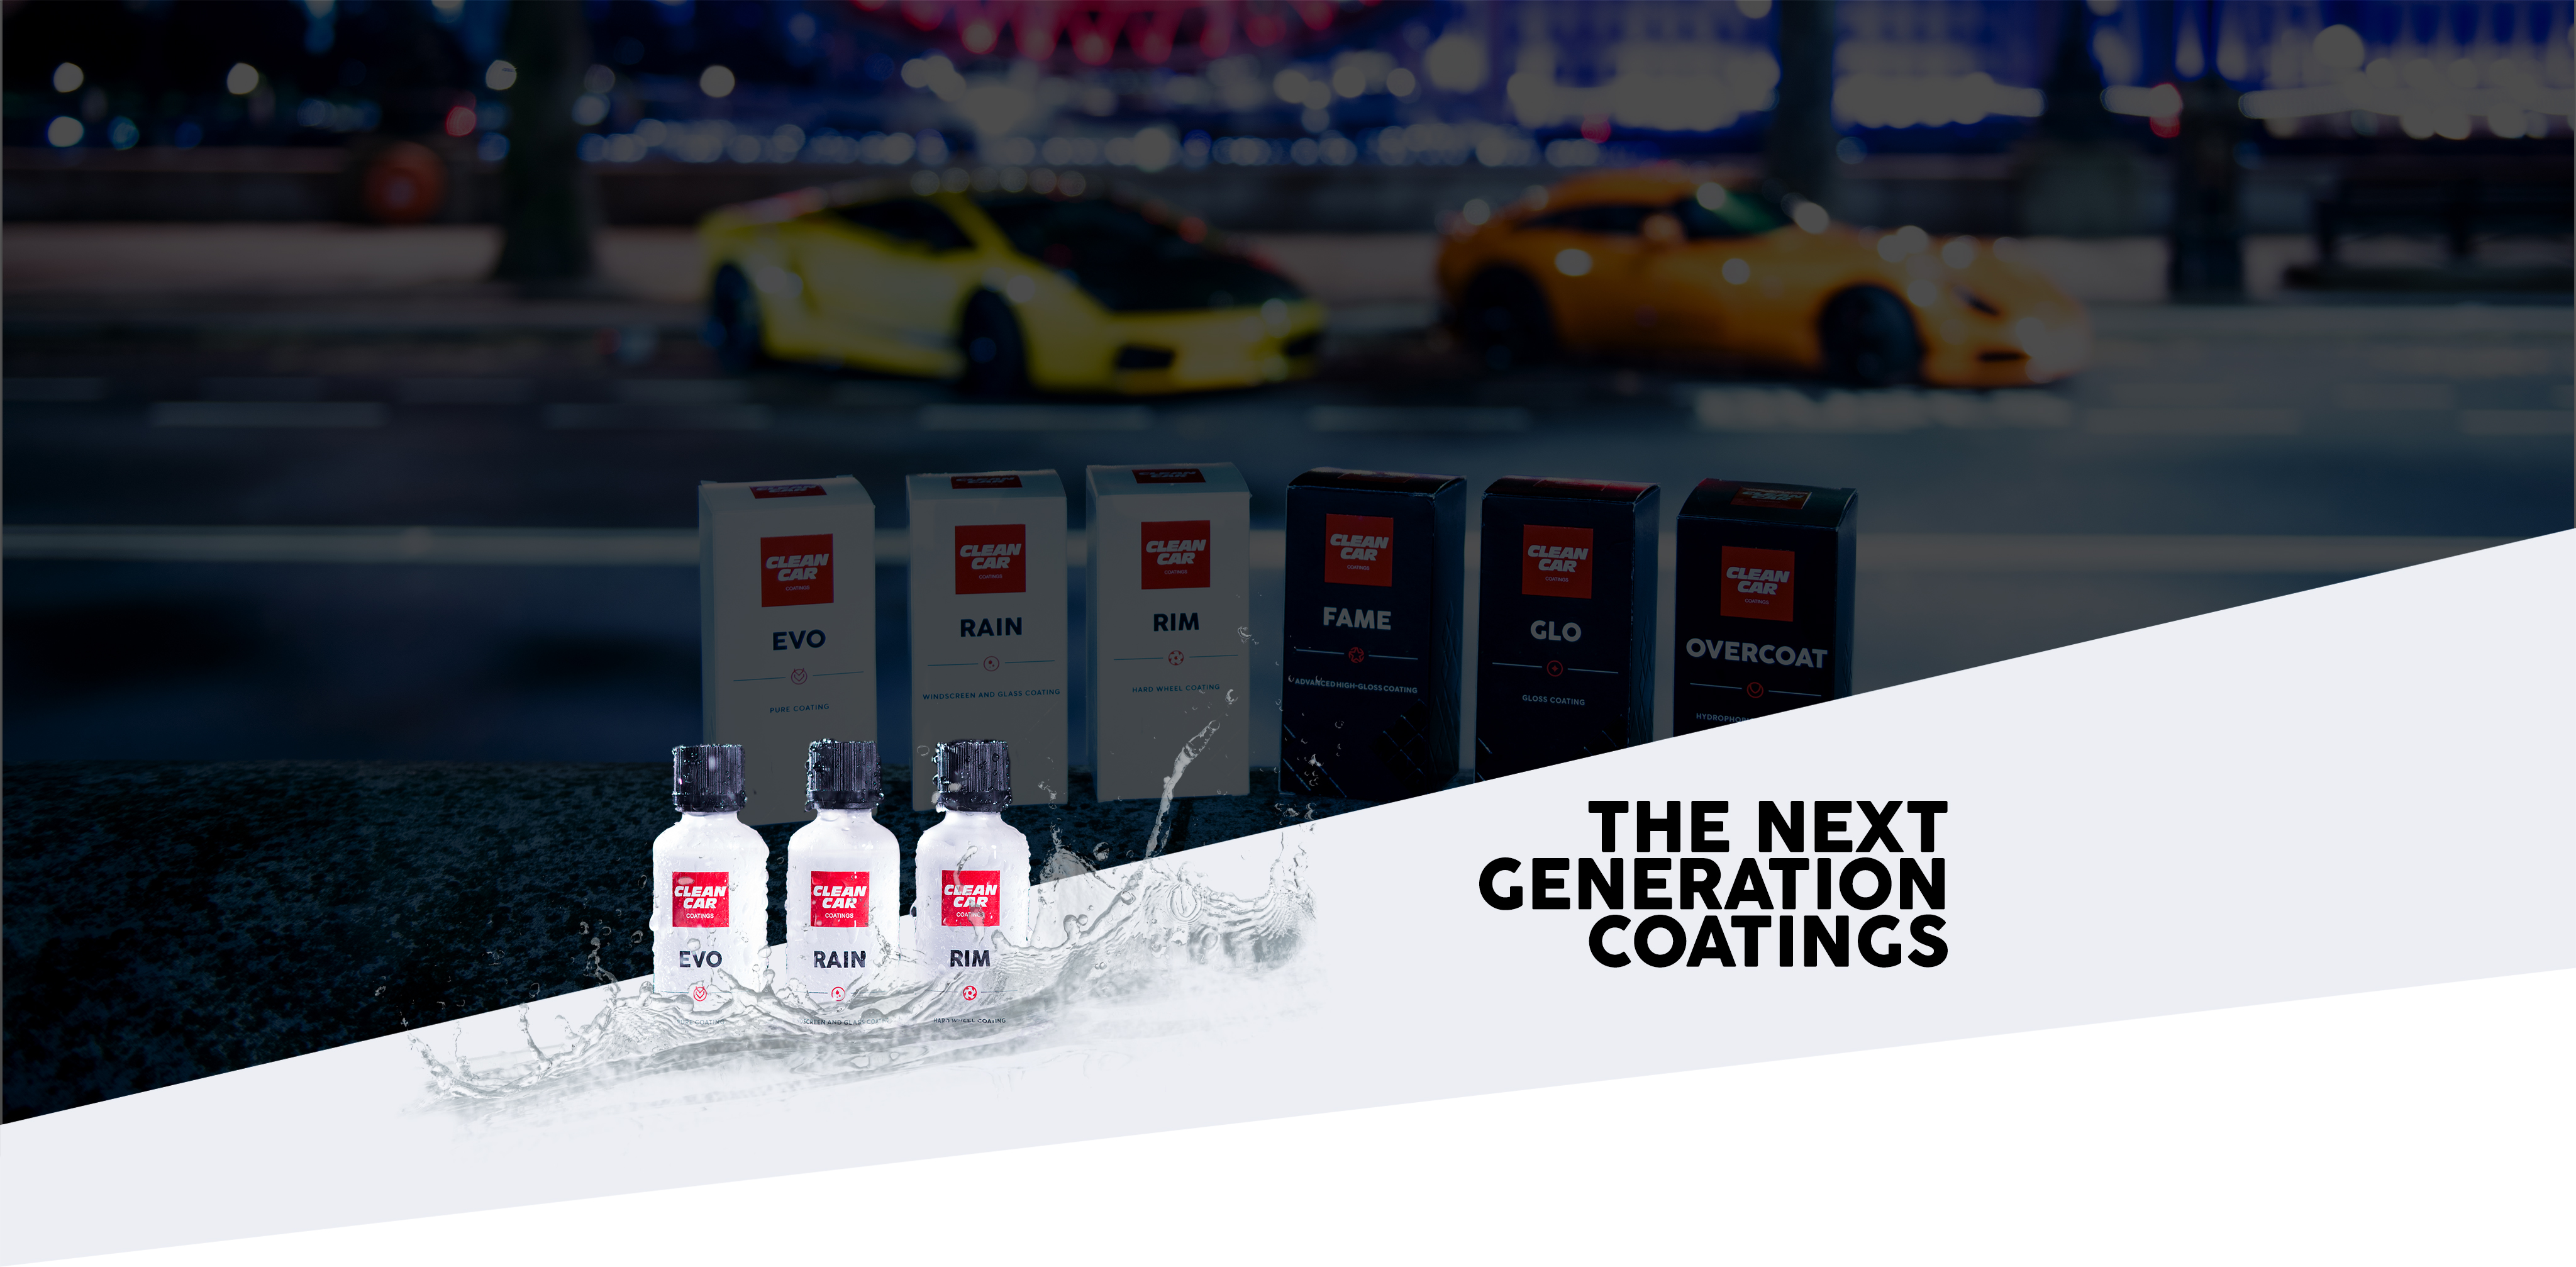 THE NEXT GENERATION COATING